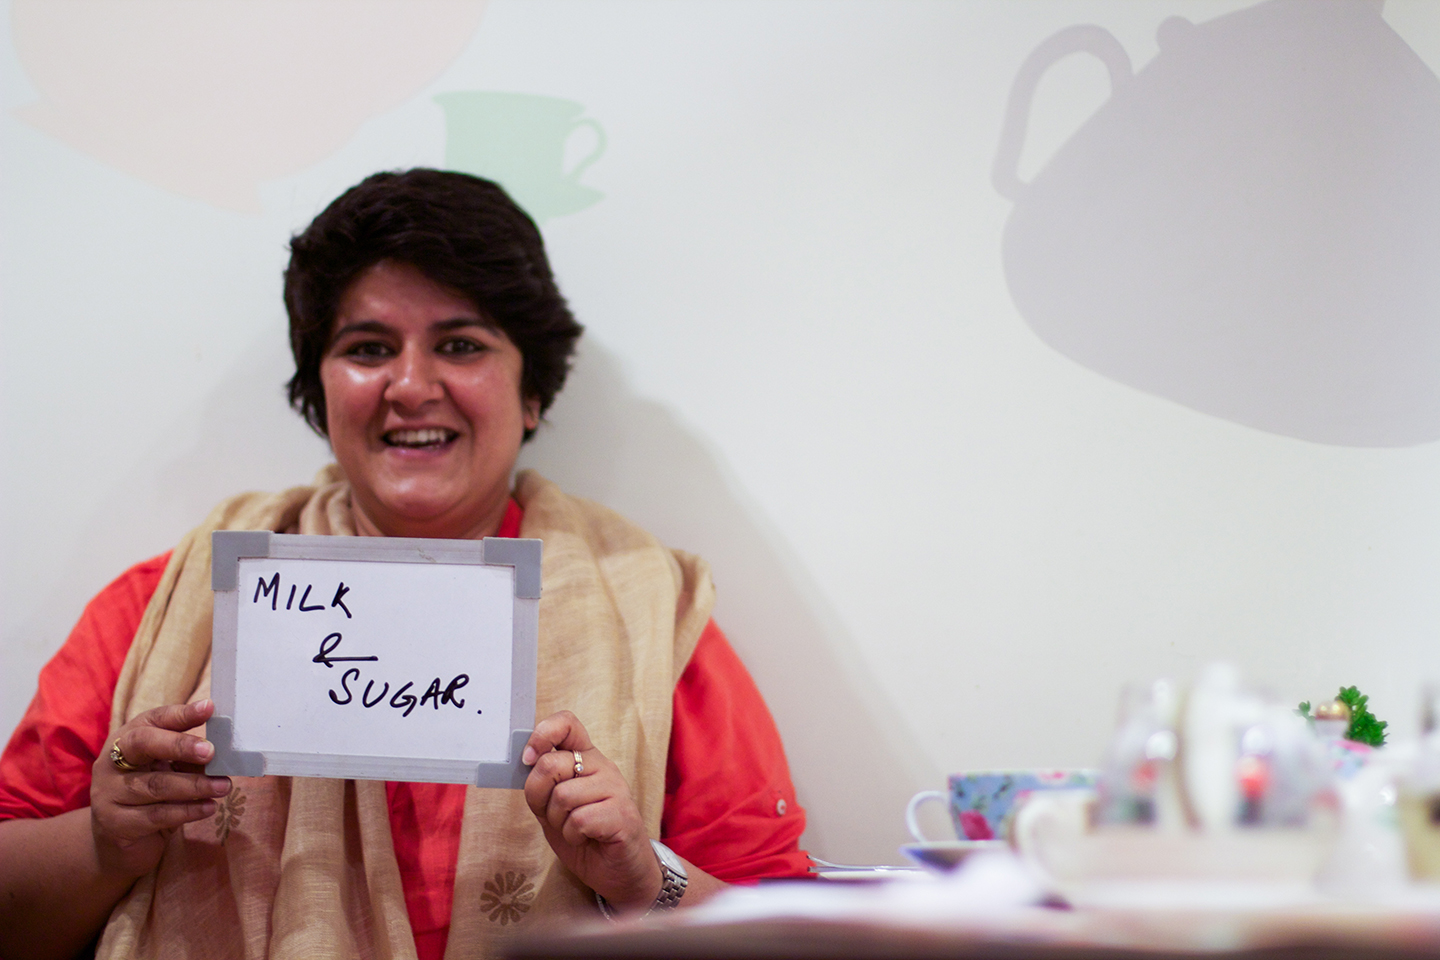 Anamika Singh was raised on tea. Her father worked in the industry, setting the stage for her lifetime love affair with the brew.